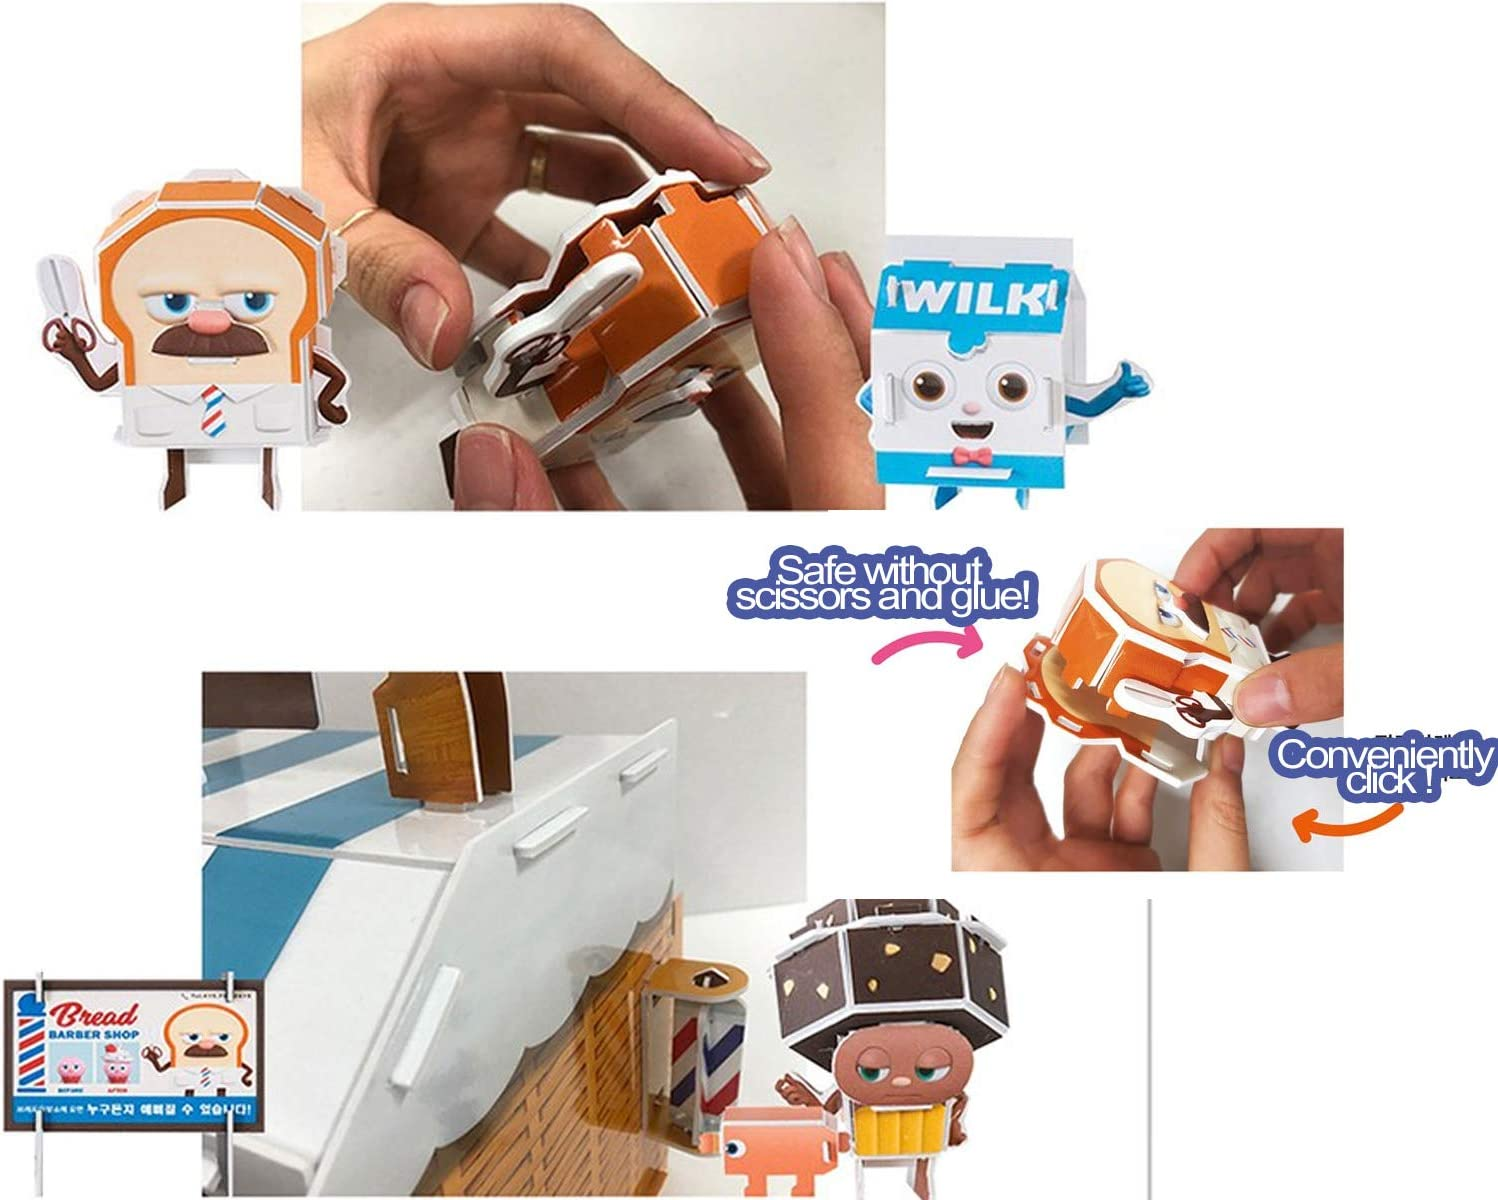 TV Character Item for Christmas Birthday Boys Girls Toy Figure Formpod Miniature Set Make Kit with Furniture /& Characters Bread Barbershop Lighted Miniature DIY Set